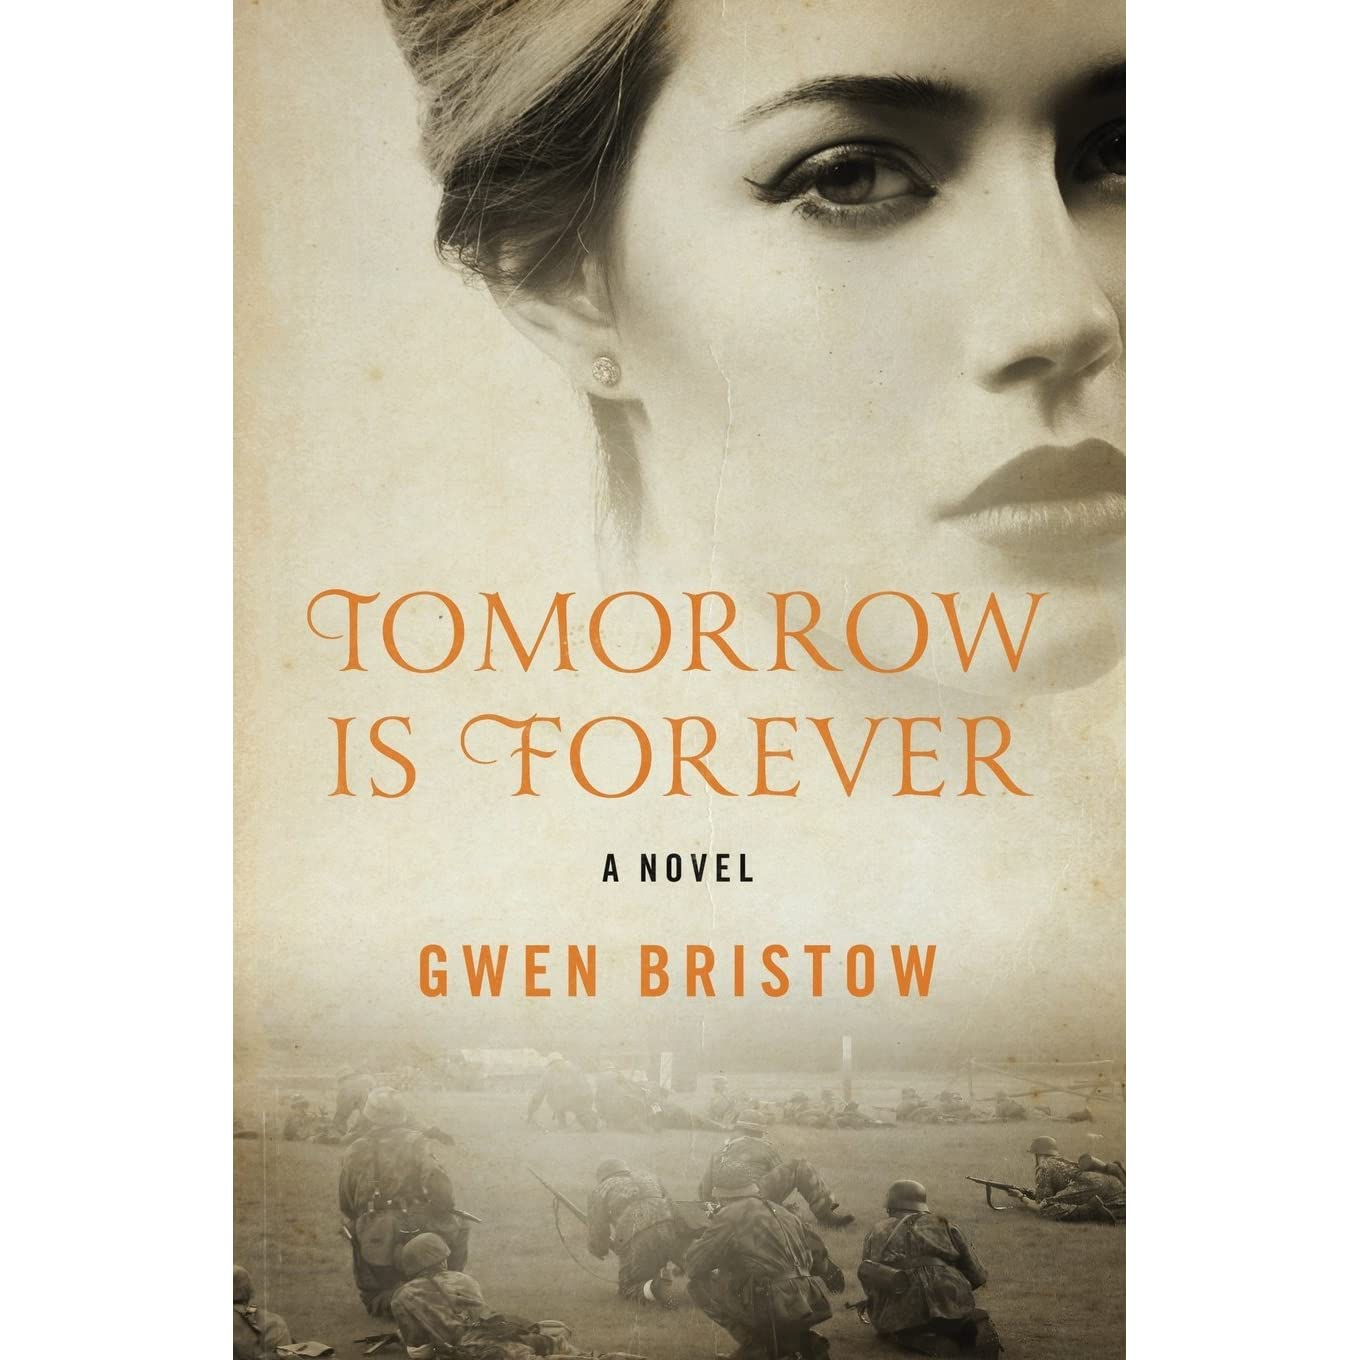 Image result for tommorrow is forever book cover